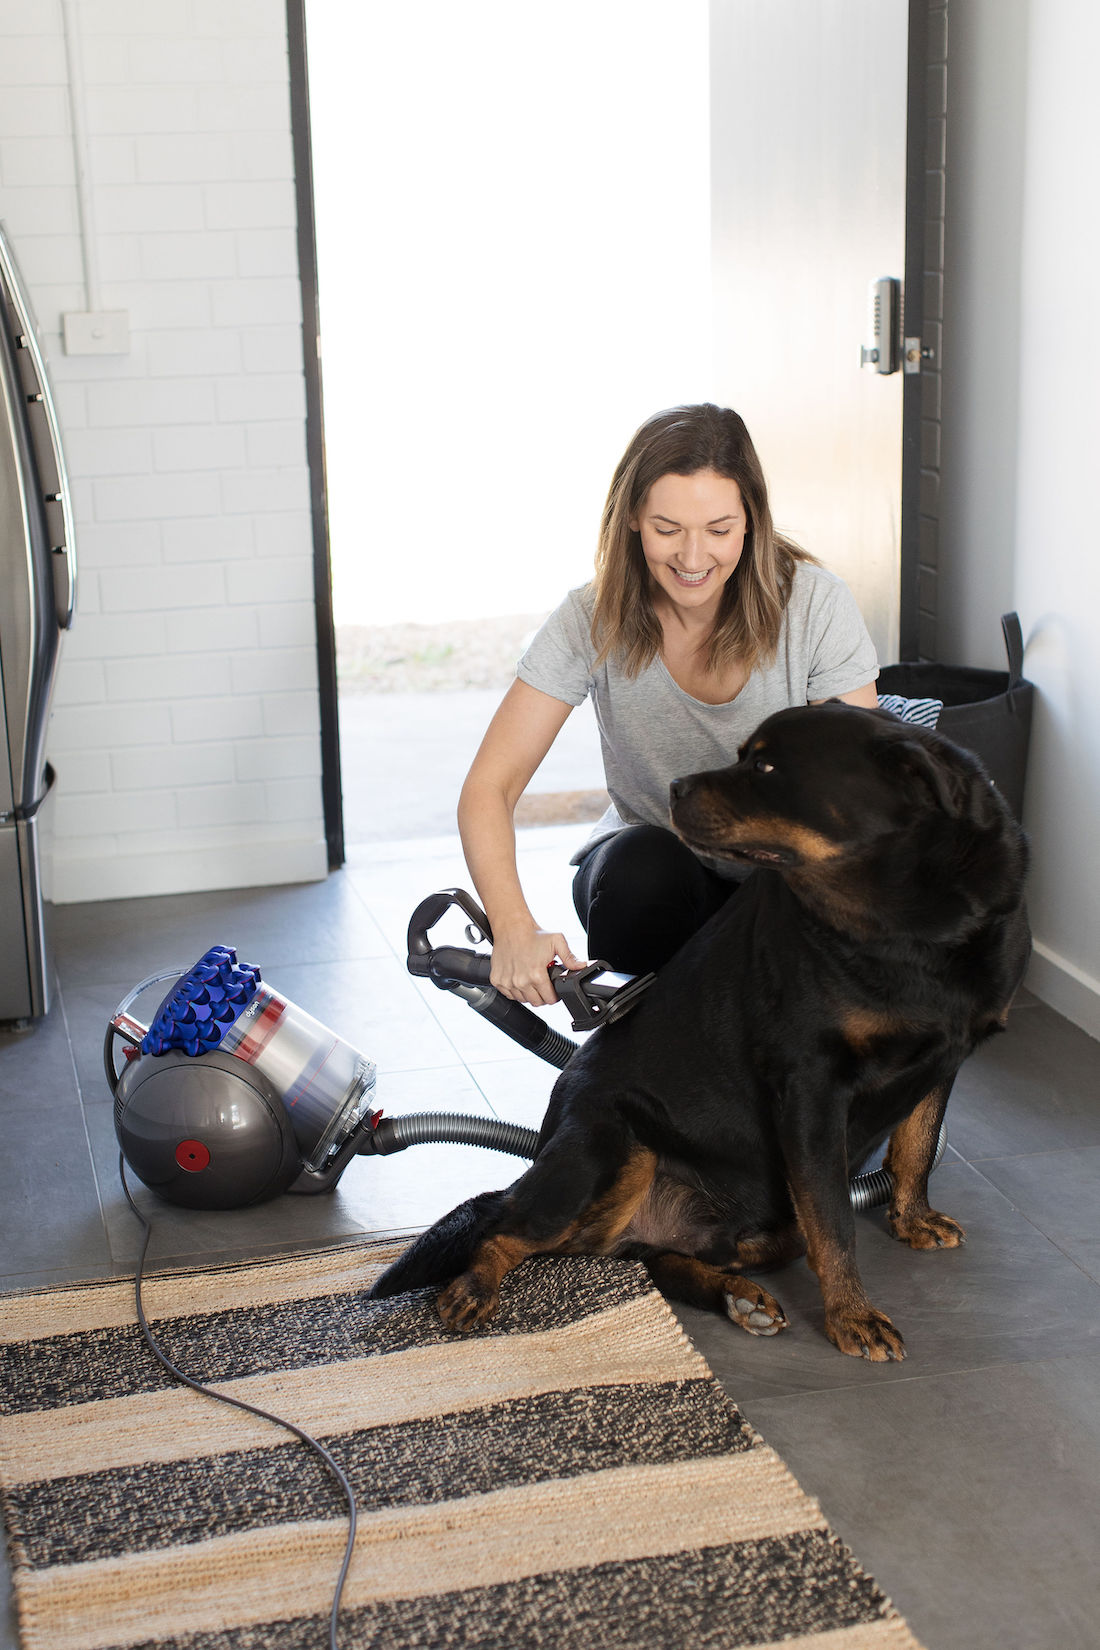 Dyson animal attachment Dyson Cinetic Big Ball Animal+ vacuum cleaner